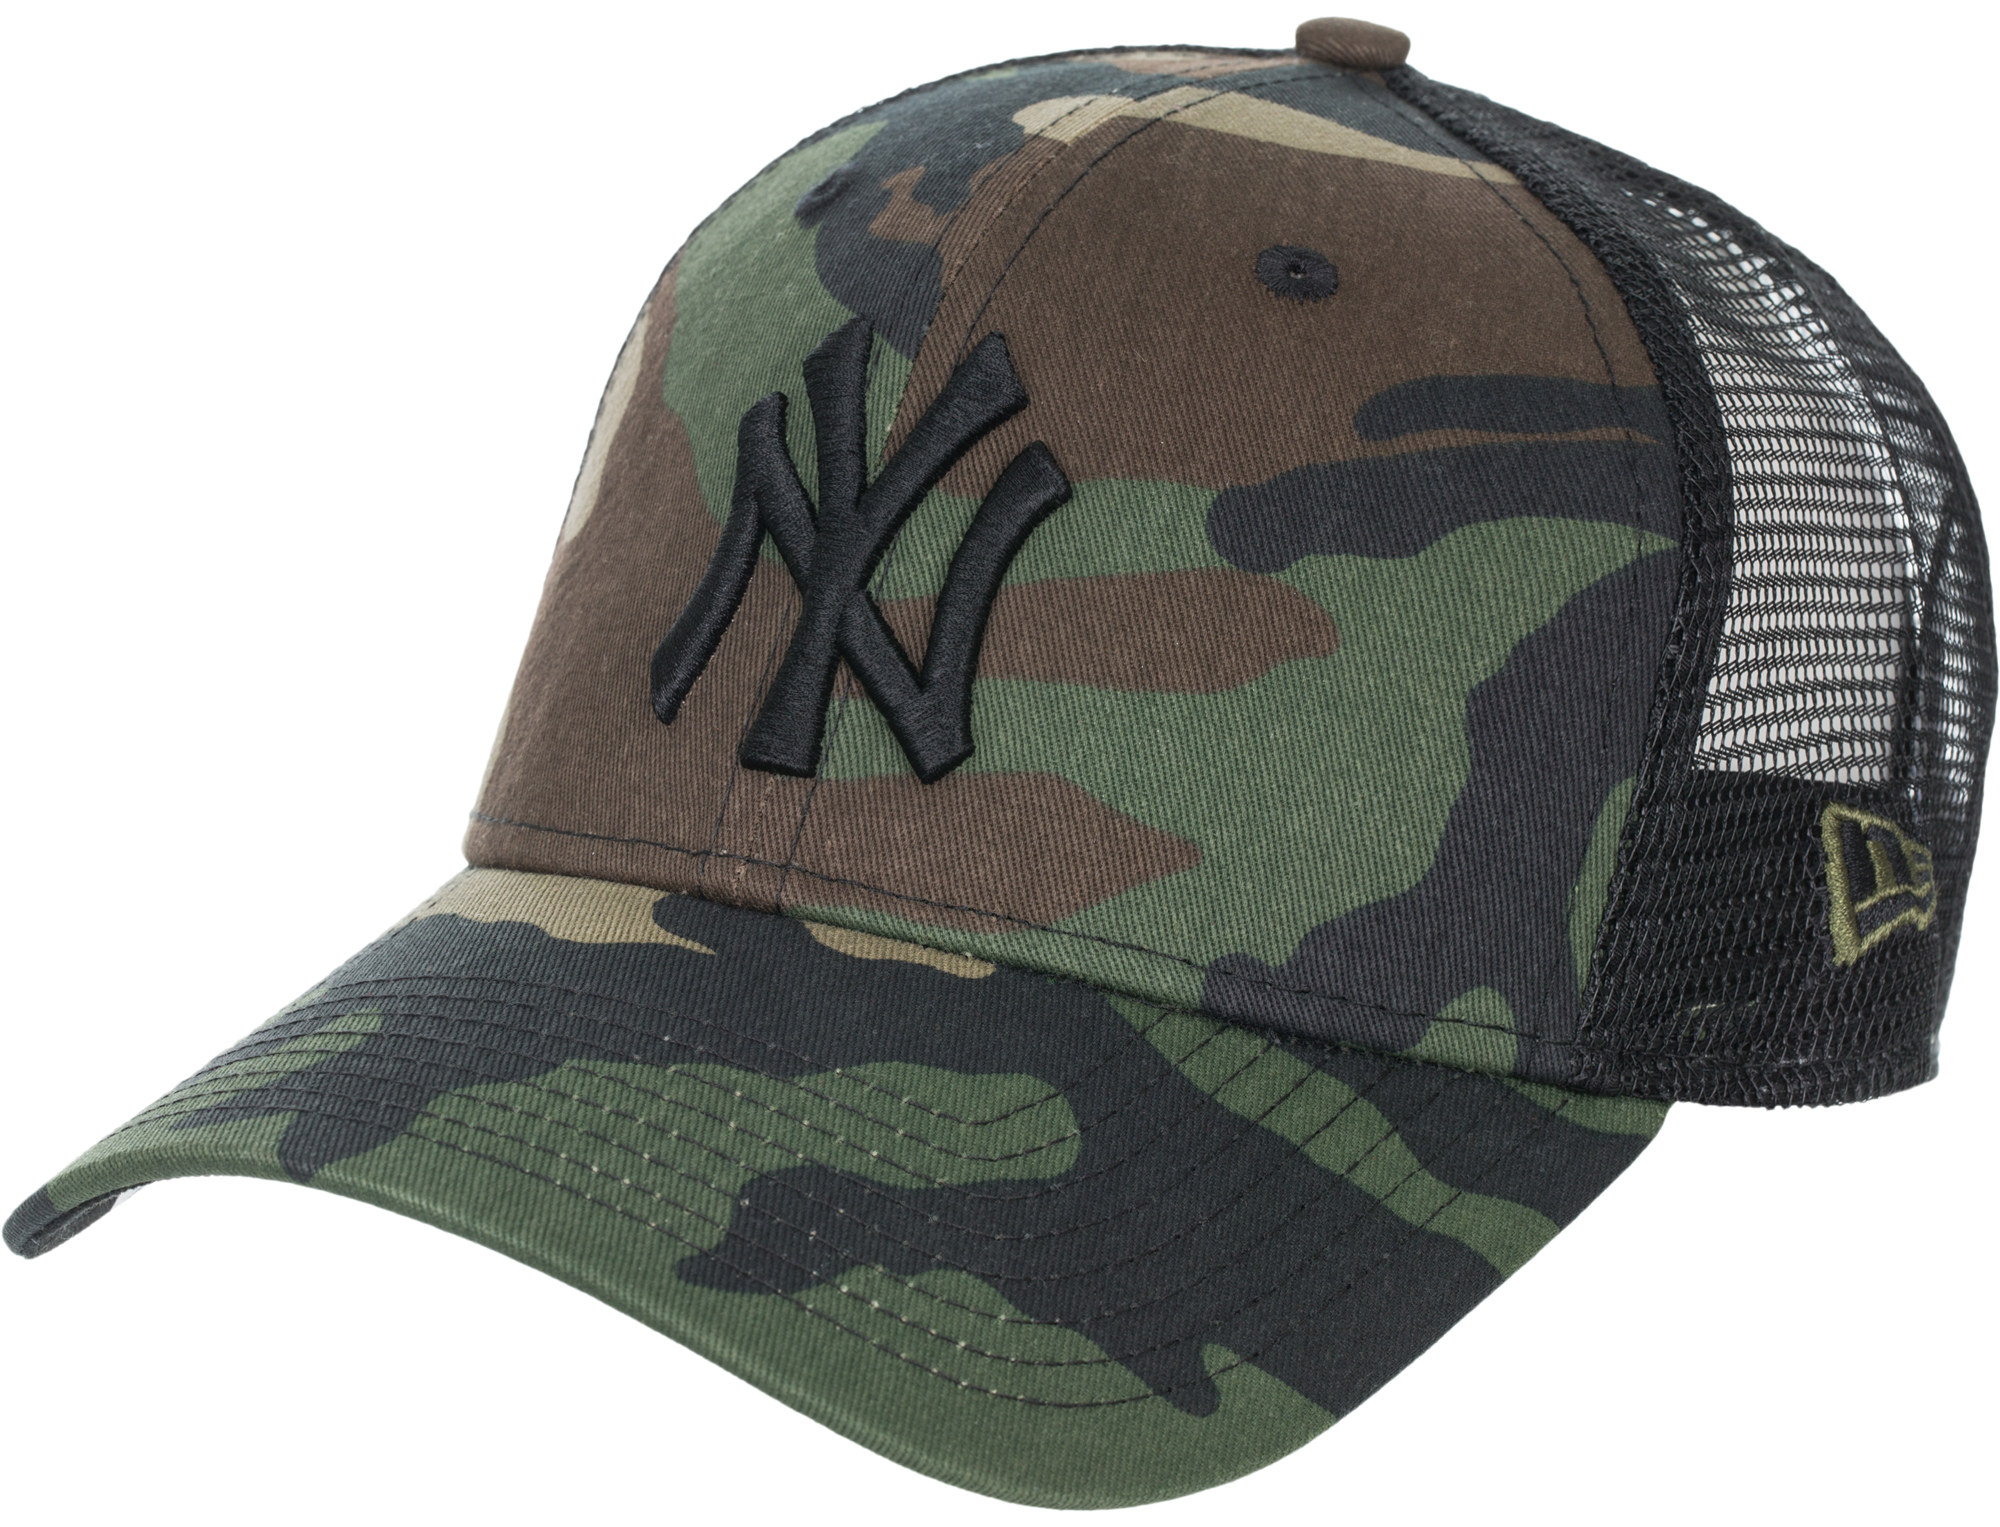 New Era Бейсболка New Era Core Trucker Neyyan majorleaguebaseball mlb new york yankees nyy home yankee stadium 3d puzzle model paper